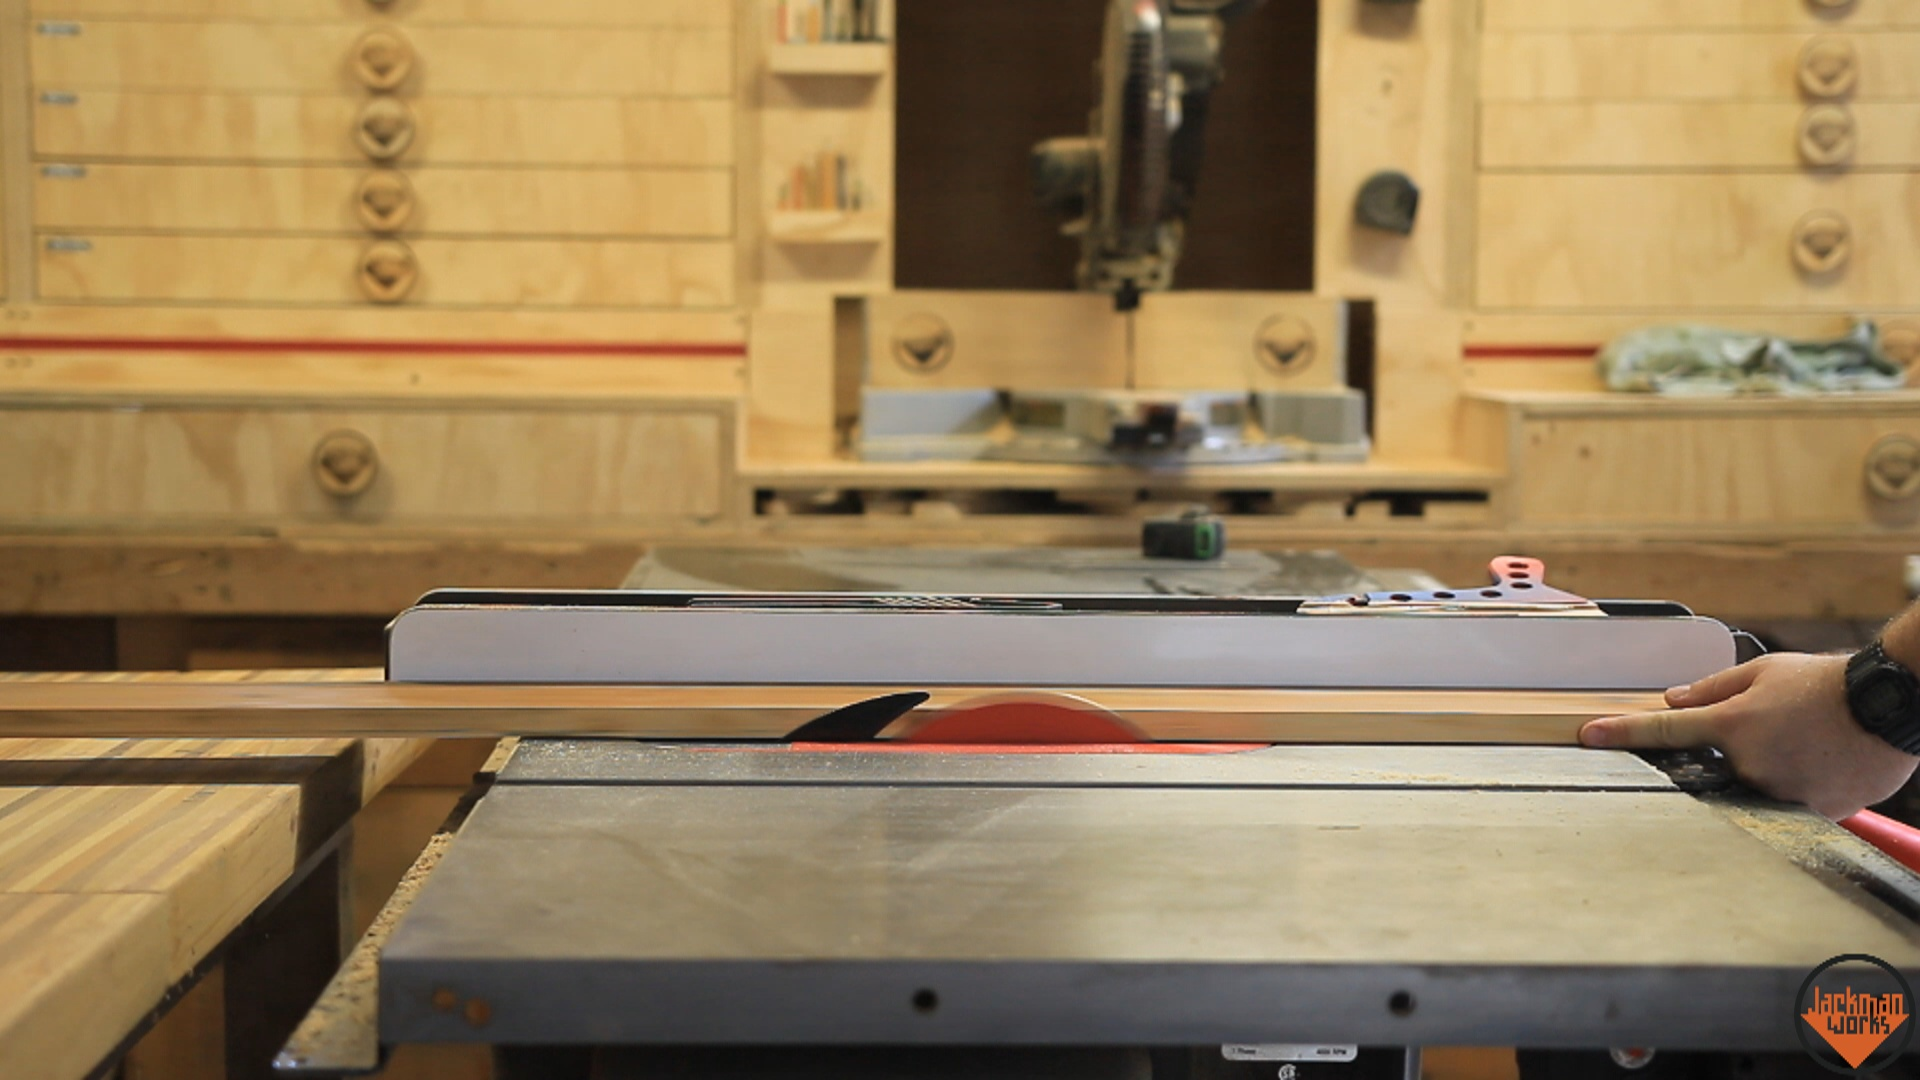 Cnc table 23 jackman works jackman carpentry jackman works woodworking wood diy do it yourself building making creative design custom upcycle recycle cnc cnc machine cnc router cnc solutioingenieria Gallery